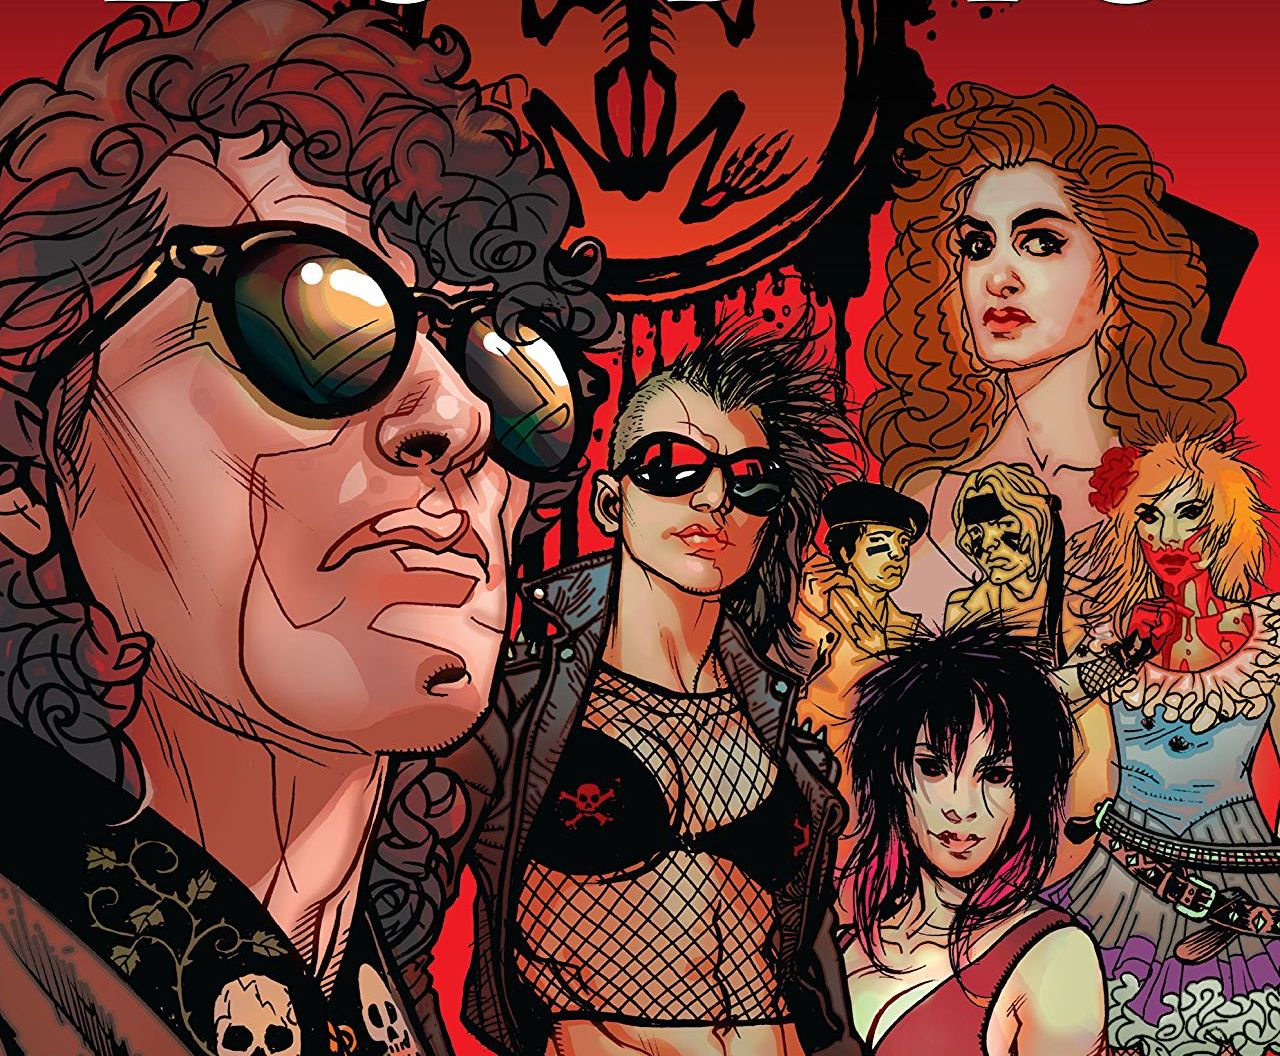 'The Lost Boys' Vol. 1 review: Vertigo captures the mood and culture of the 80's